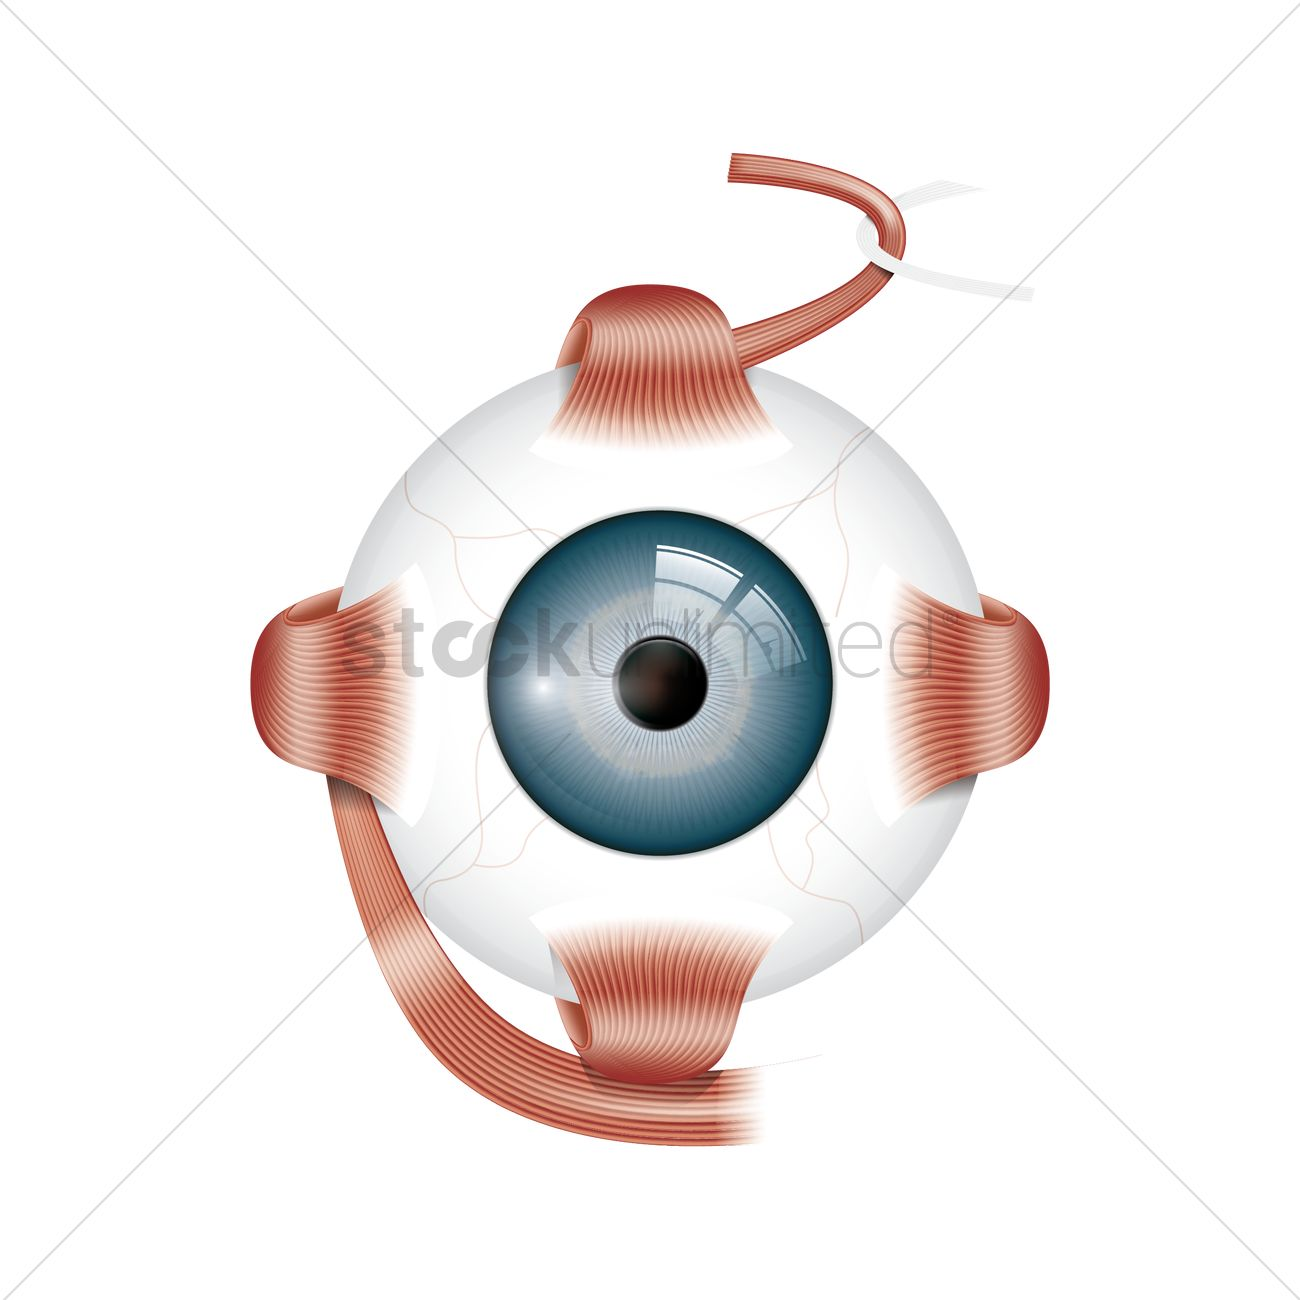 Human eye anatomy Vector Image - 1815155 | StockUnlimited